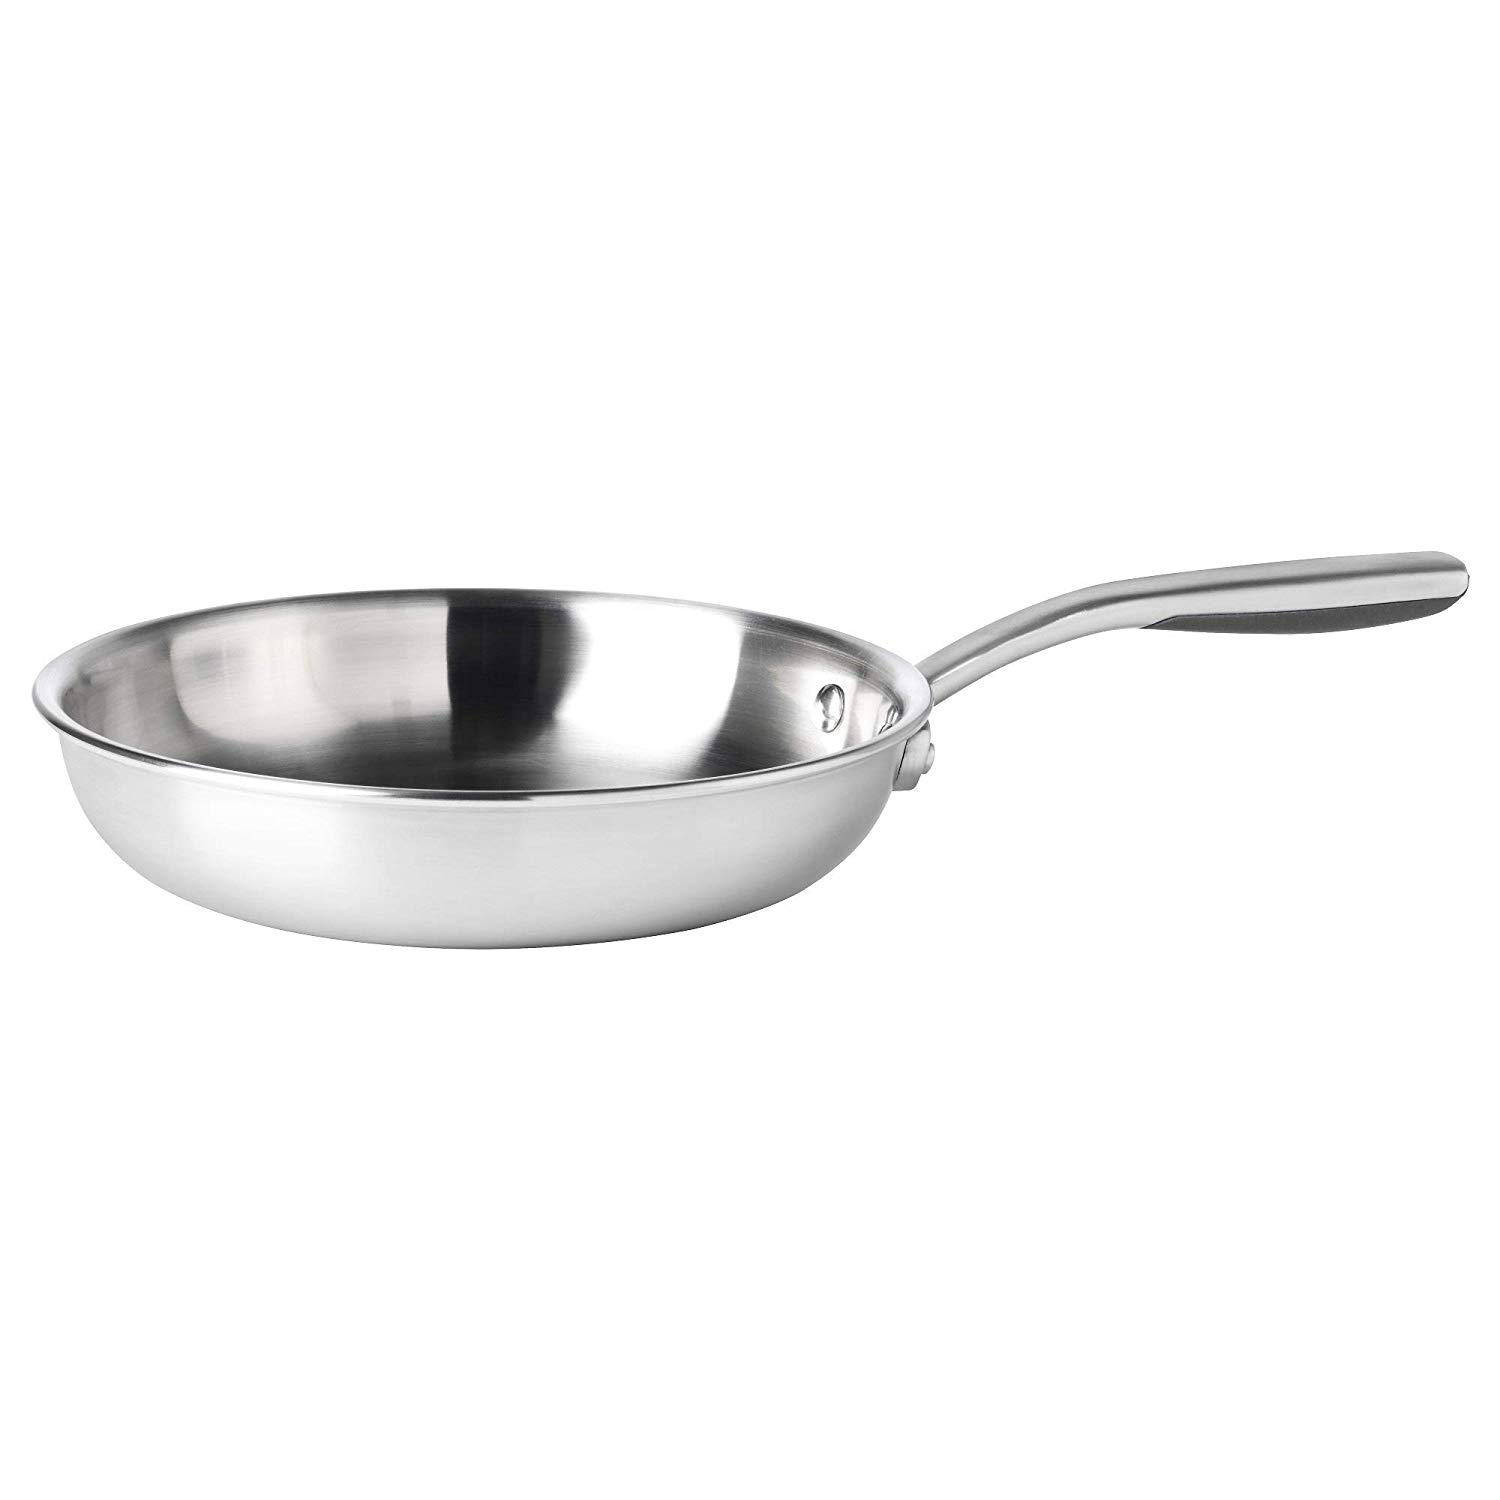 SENSUELL Frying pan, stainless steel, grey, 28 cm